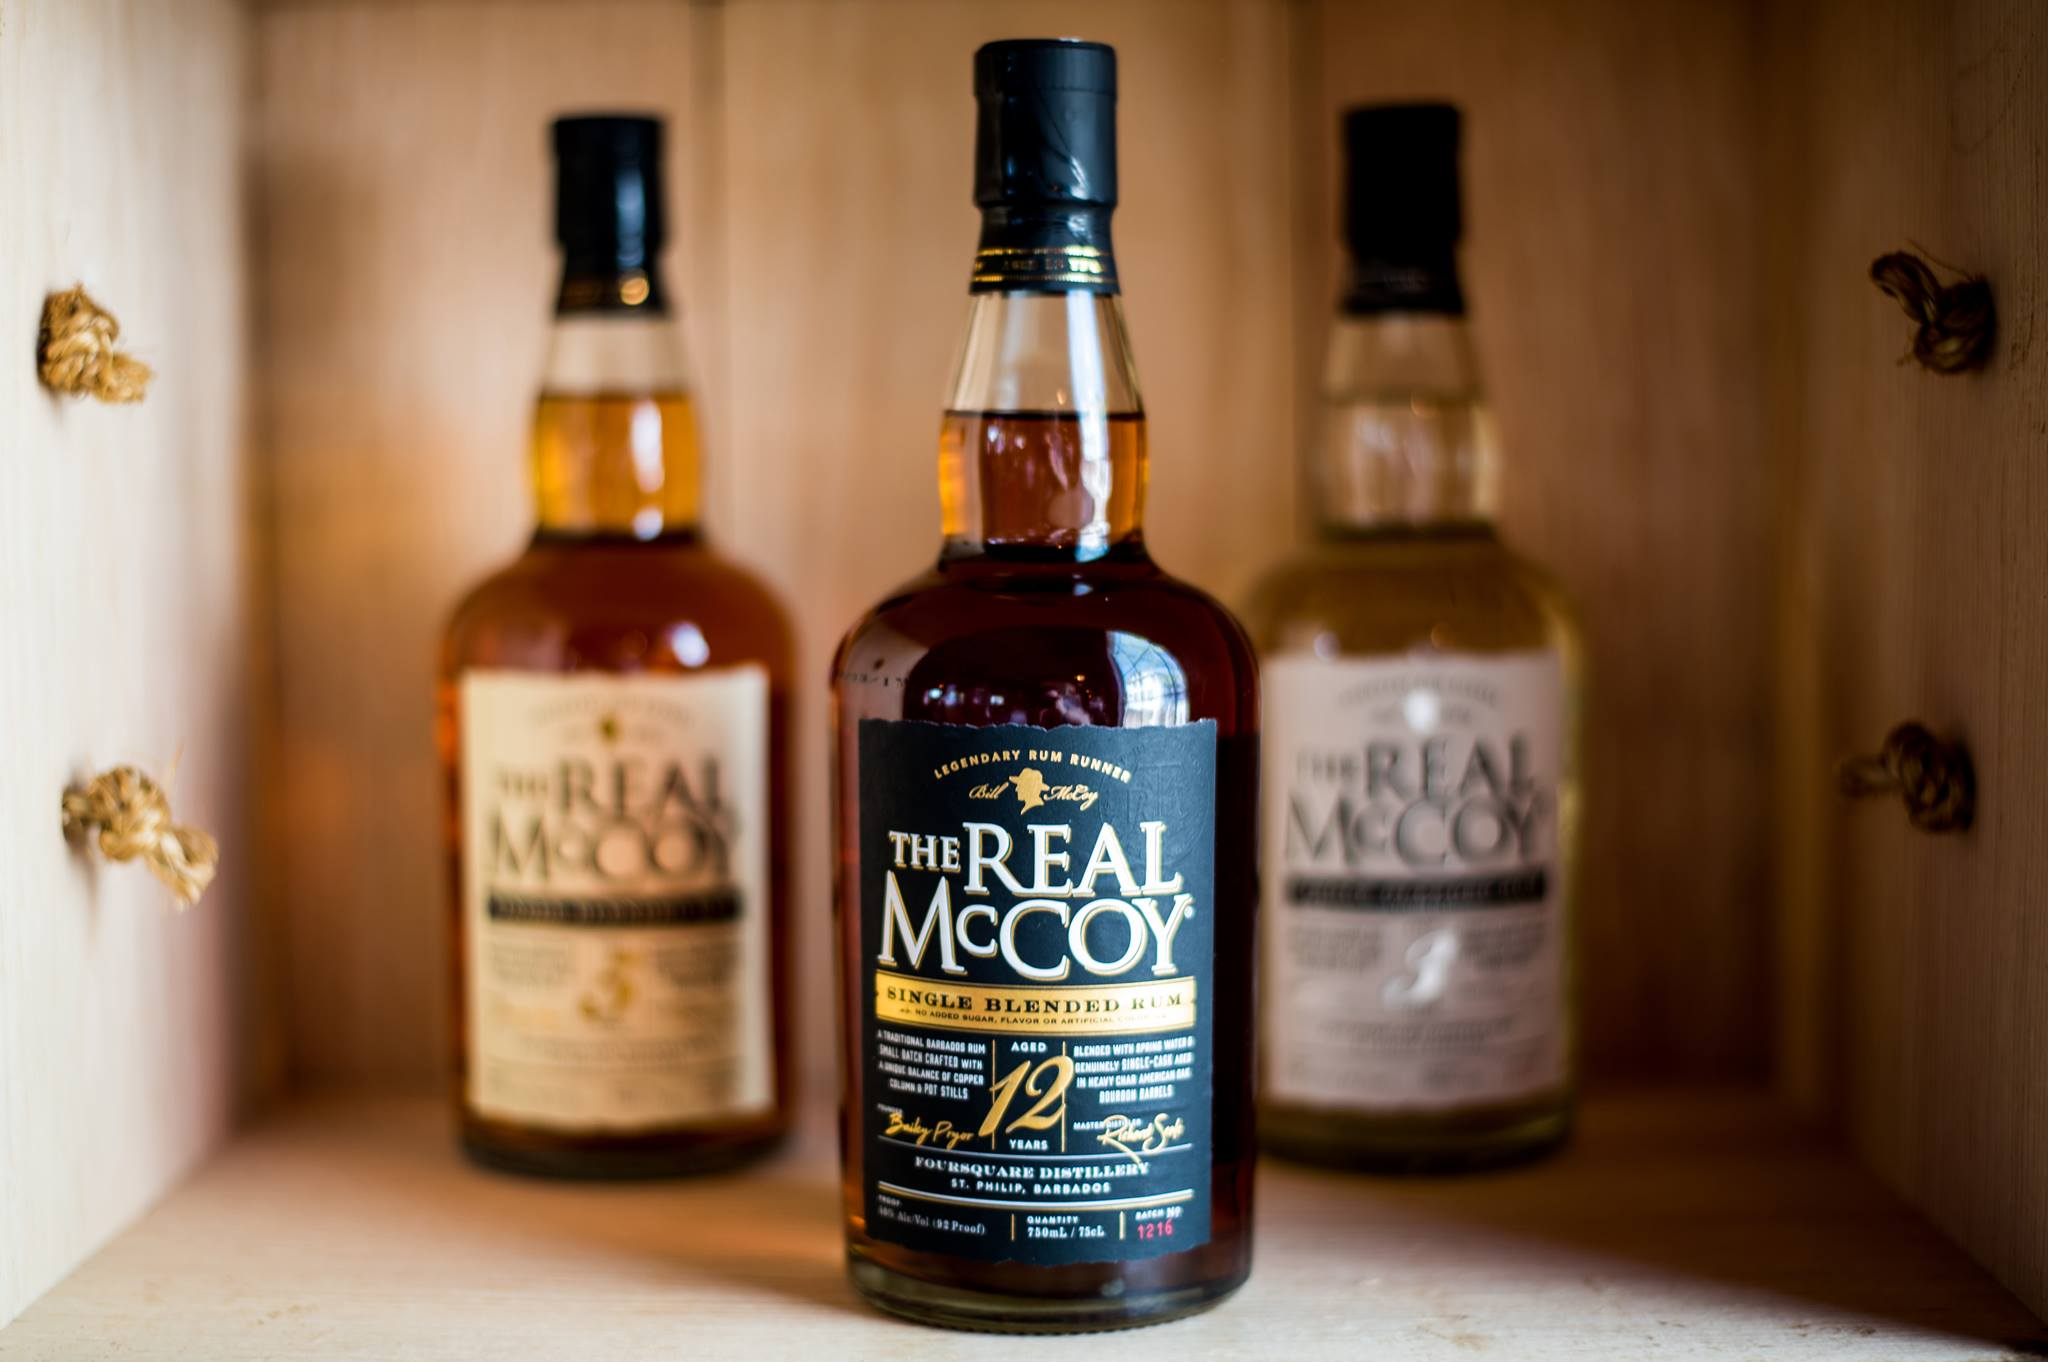 The Real McCoy Rum